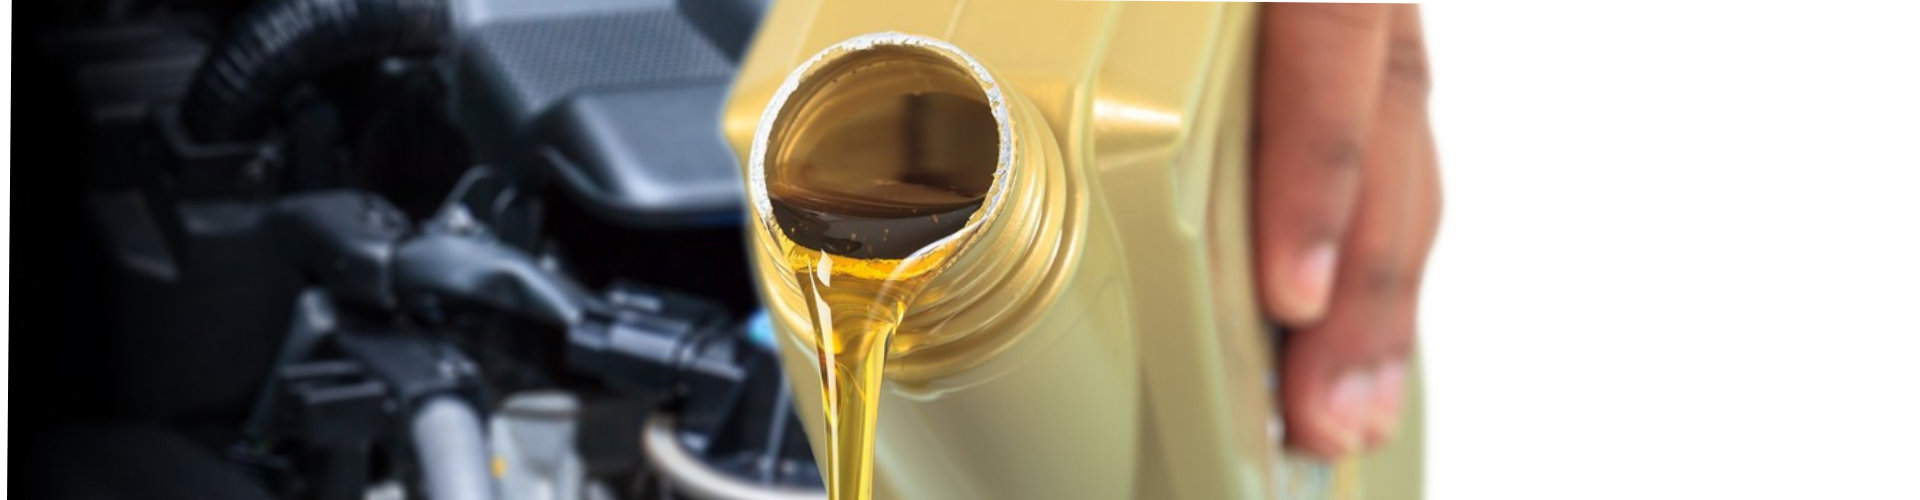 pouring oil lubricant motor car from bottle